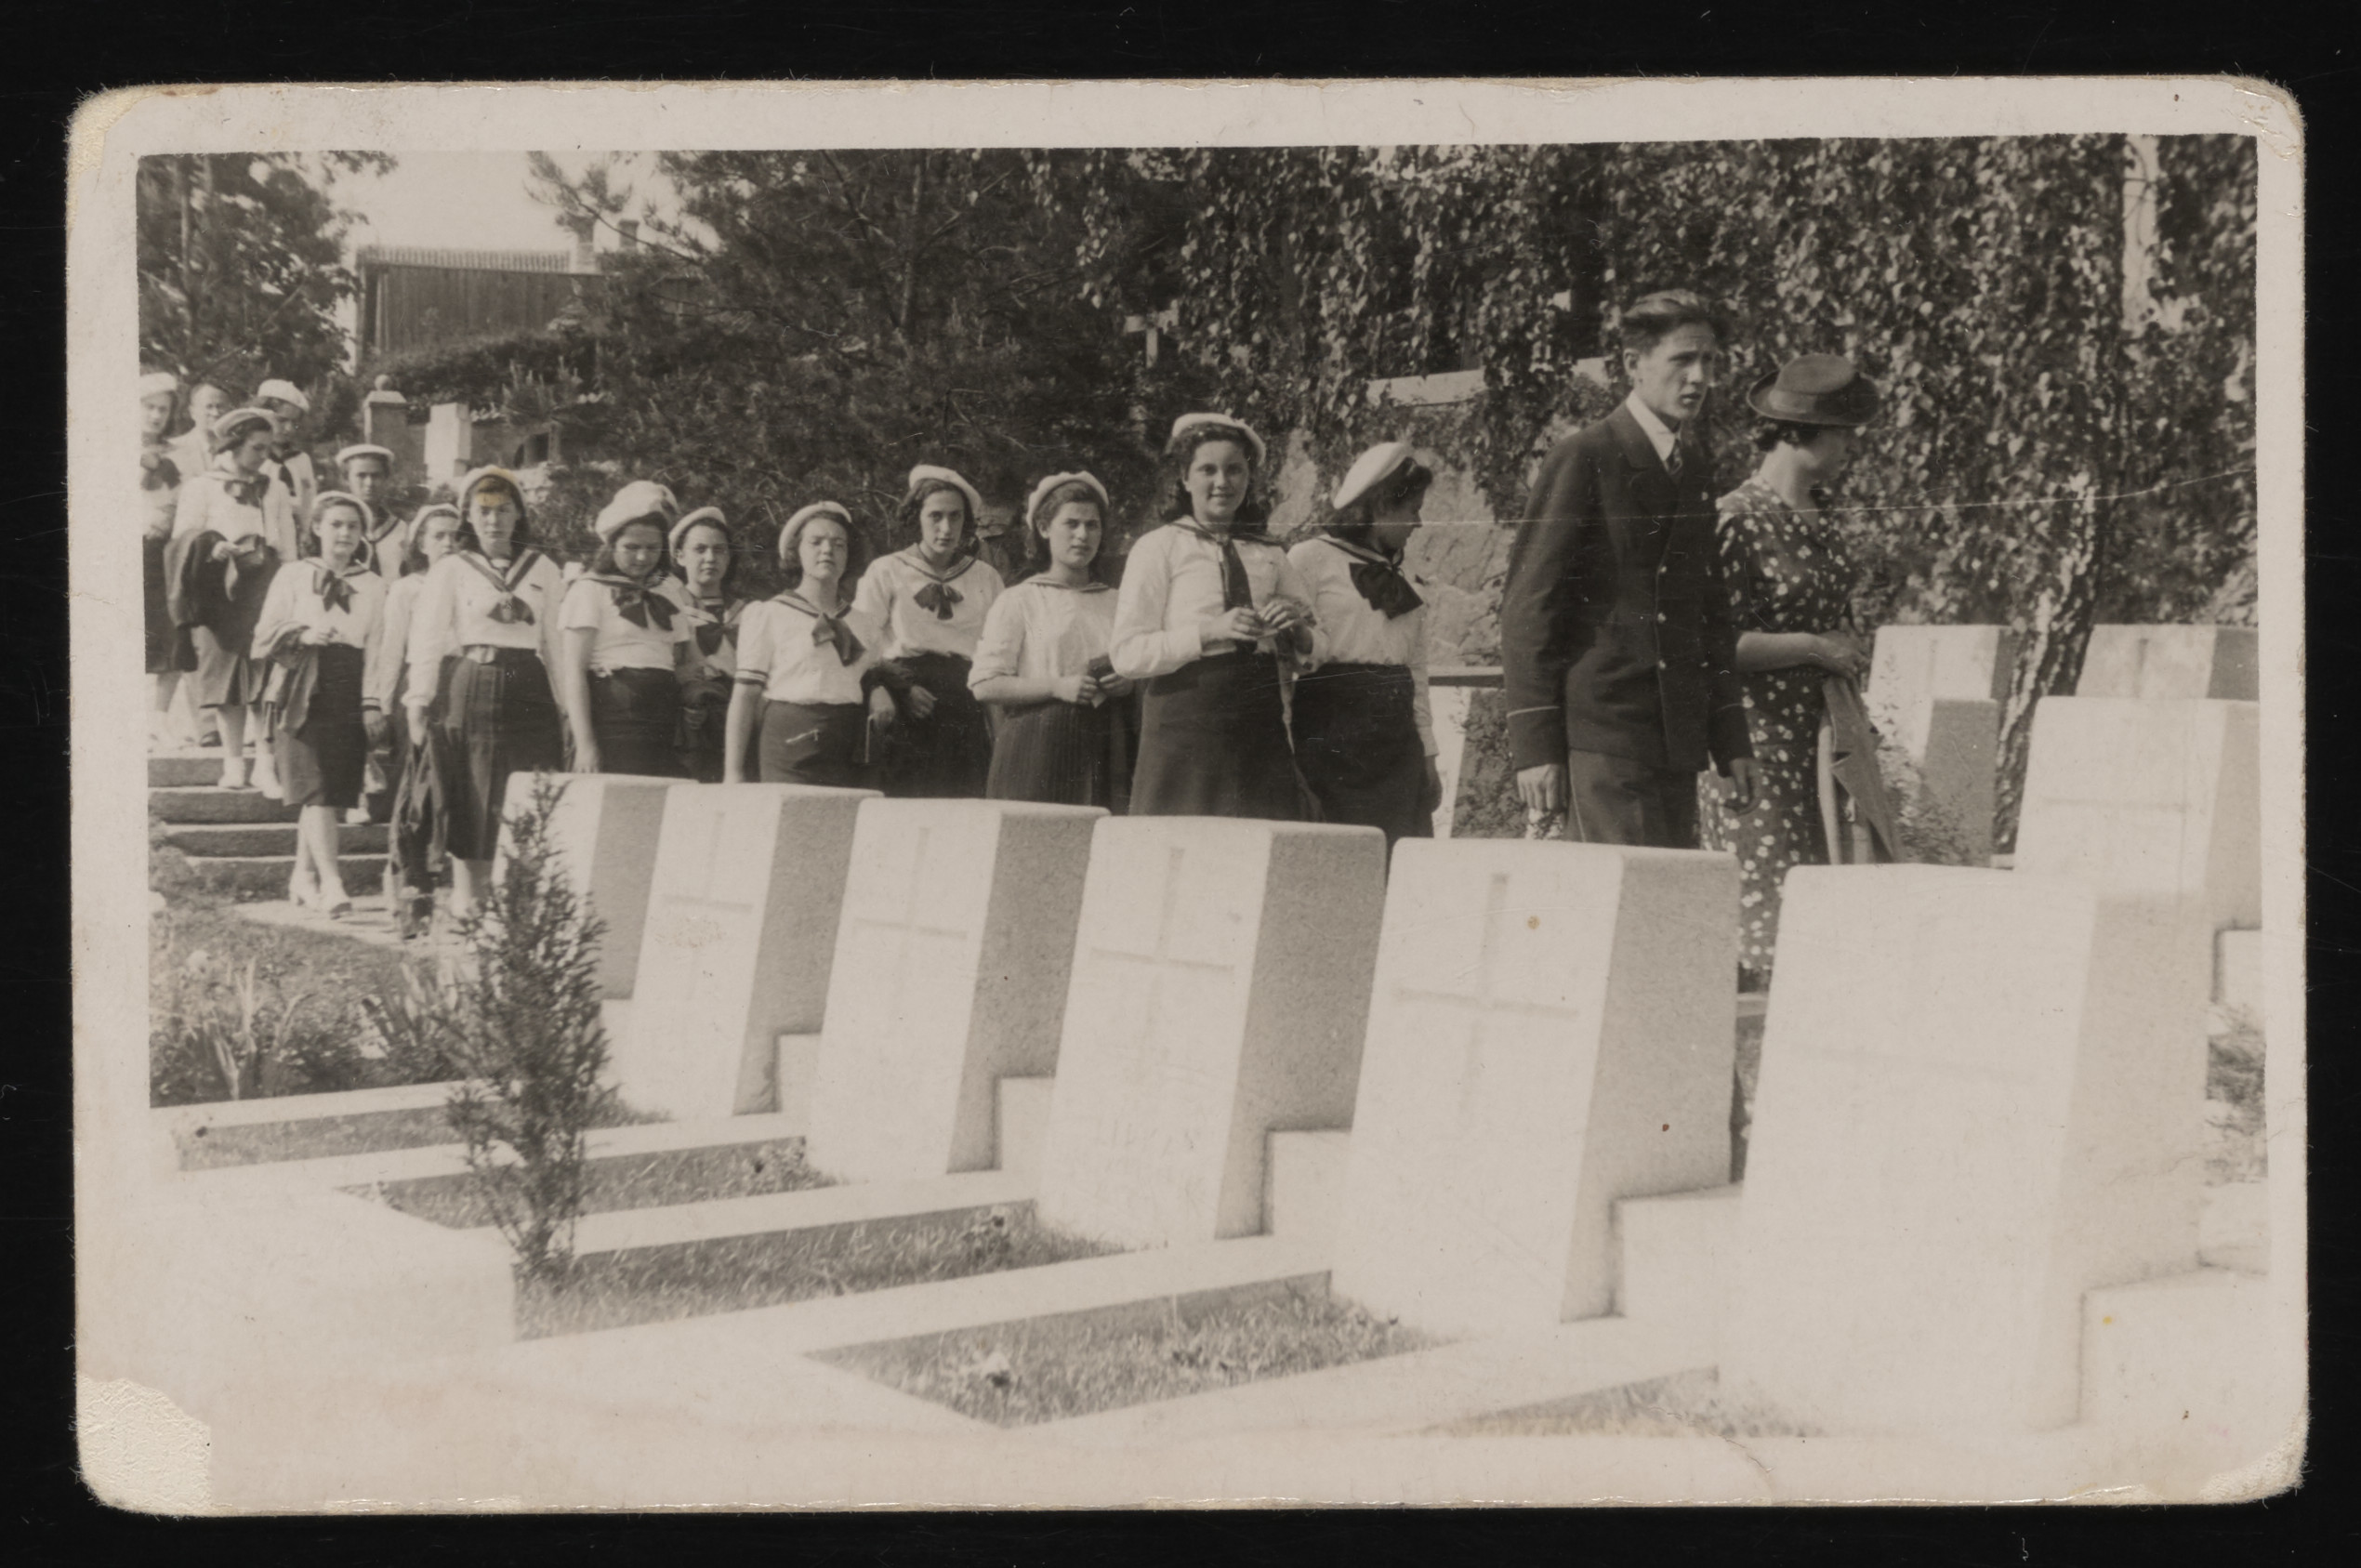 Students and teachers of the Mirlasowa private Jewish school in Warsaw, during a school trip to Vilna.    The group is visiting the cemetery where Josef Piulsudski's heart is buried.  Leading the column of students is Olga Lewinska, the Latin teacher.  Behind her are Ziuta Szczecinska, and Hanka Ginsburg. Gina Tabaczynska is third from the left.  Among the other students pictured are: Joasia Rotbard; Dzunia Uczen and Mirka Lejtes.